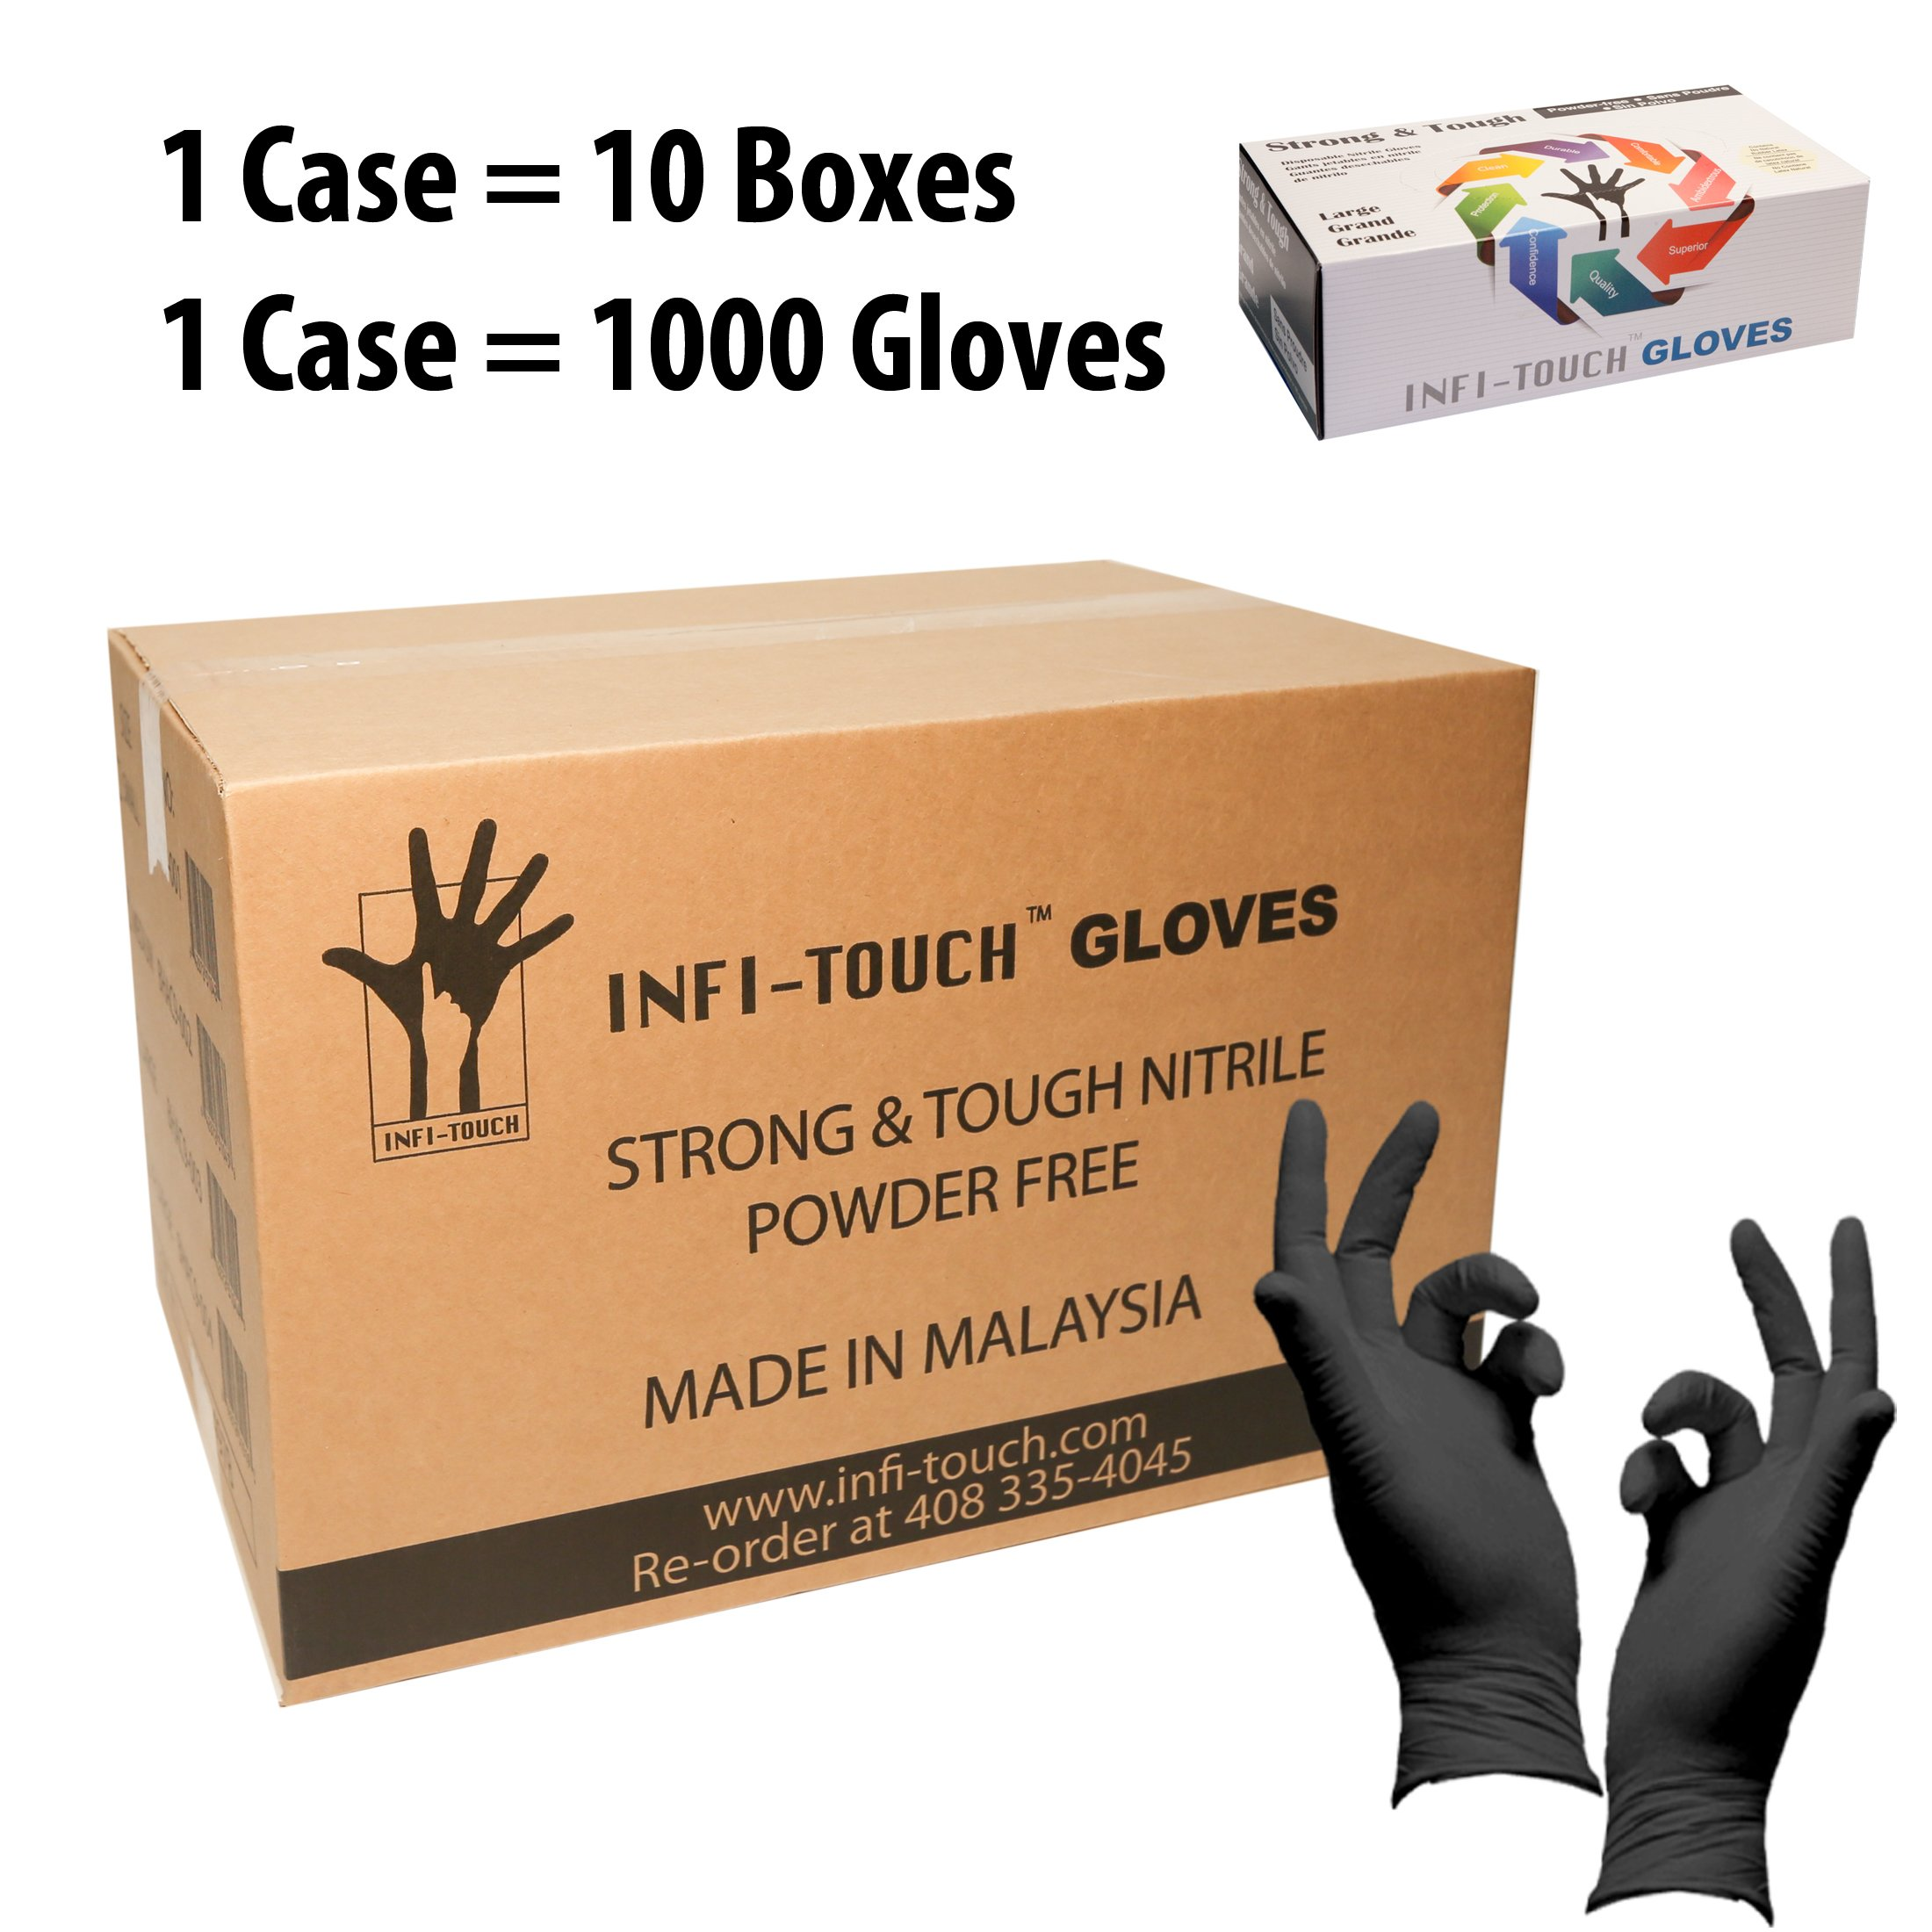 Infi-Touch Heavy Duty Nitrile Gloves, Strong & Tough, High Chemical Resistant, Disposable Gloves, Powder-Free, Non Sterile, Ambidextrous, Finger Tip Textured (10, Large) by Infi-Touch (Image #1)